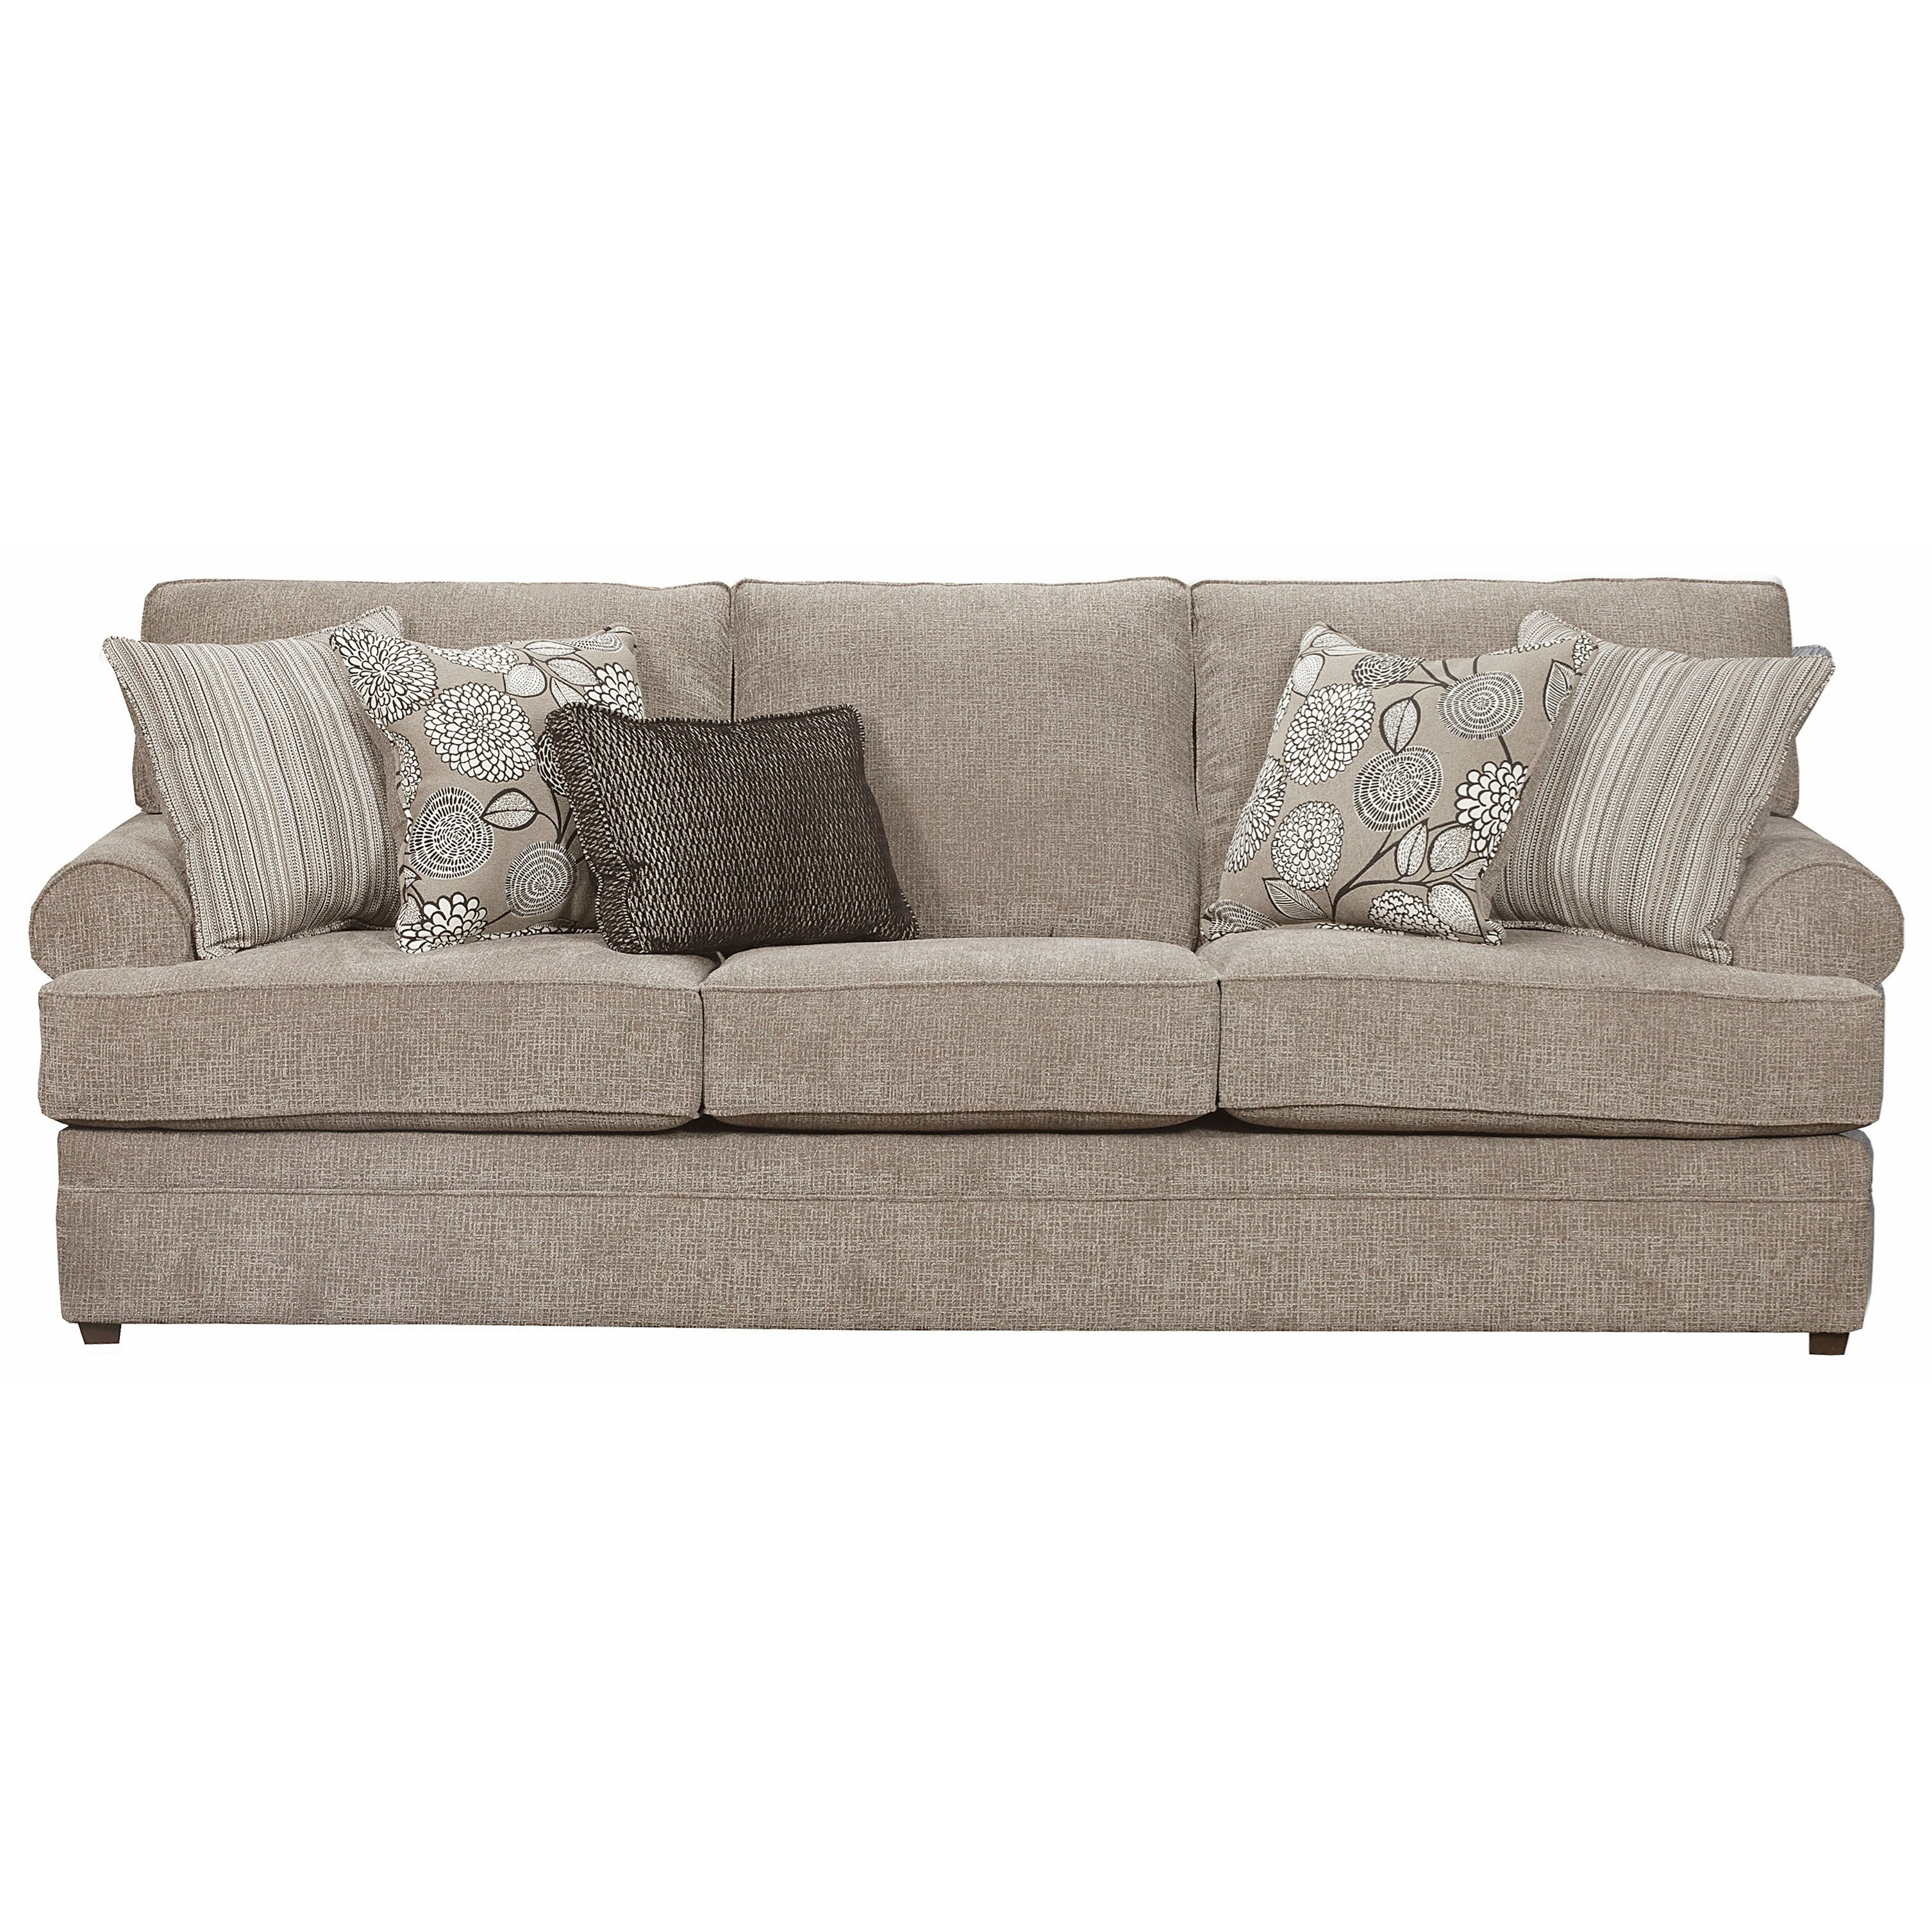 simmons albany pewter sectional. simmons upholstery 8530 br transitional sofa with rolled arms albany pewter sectional